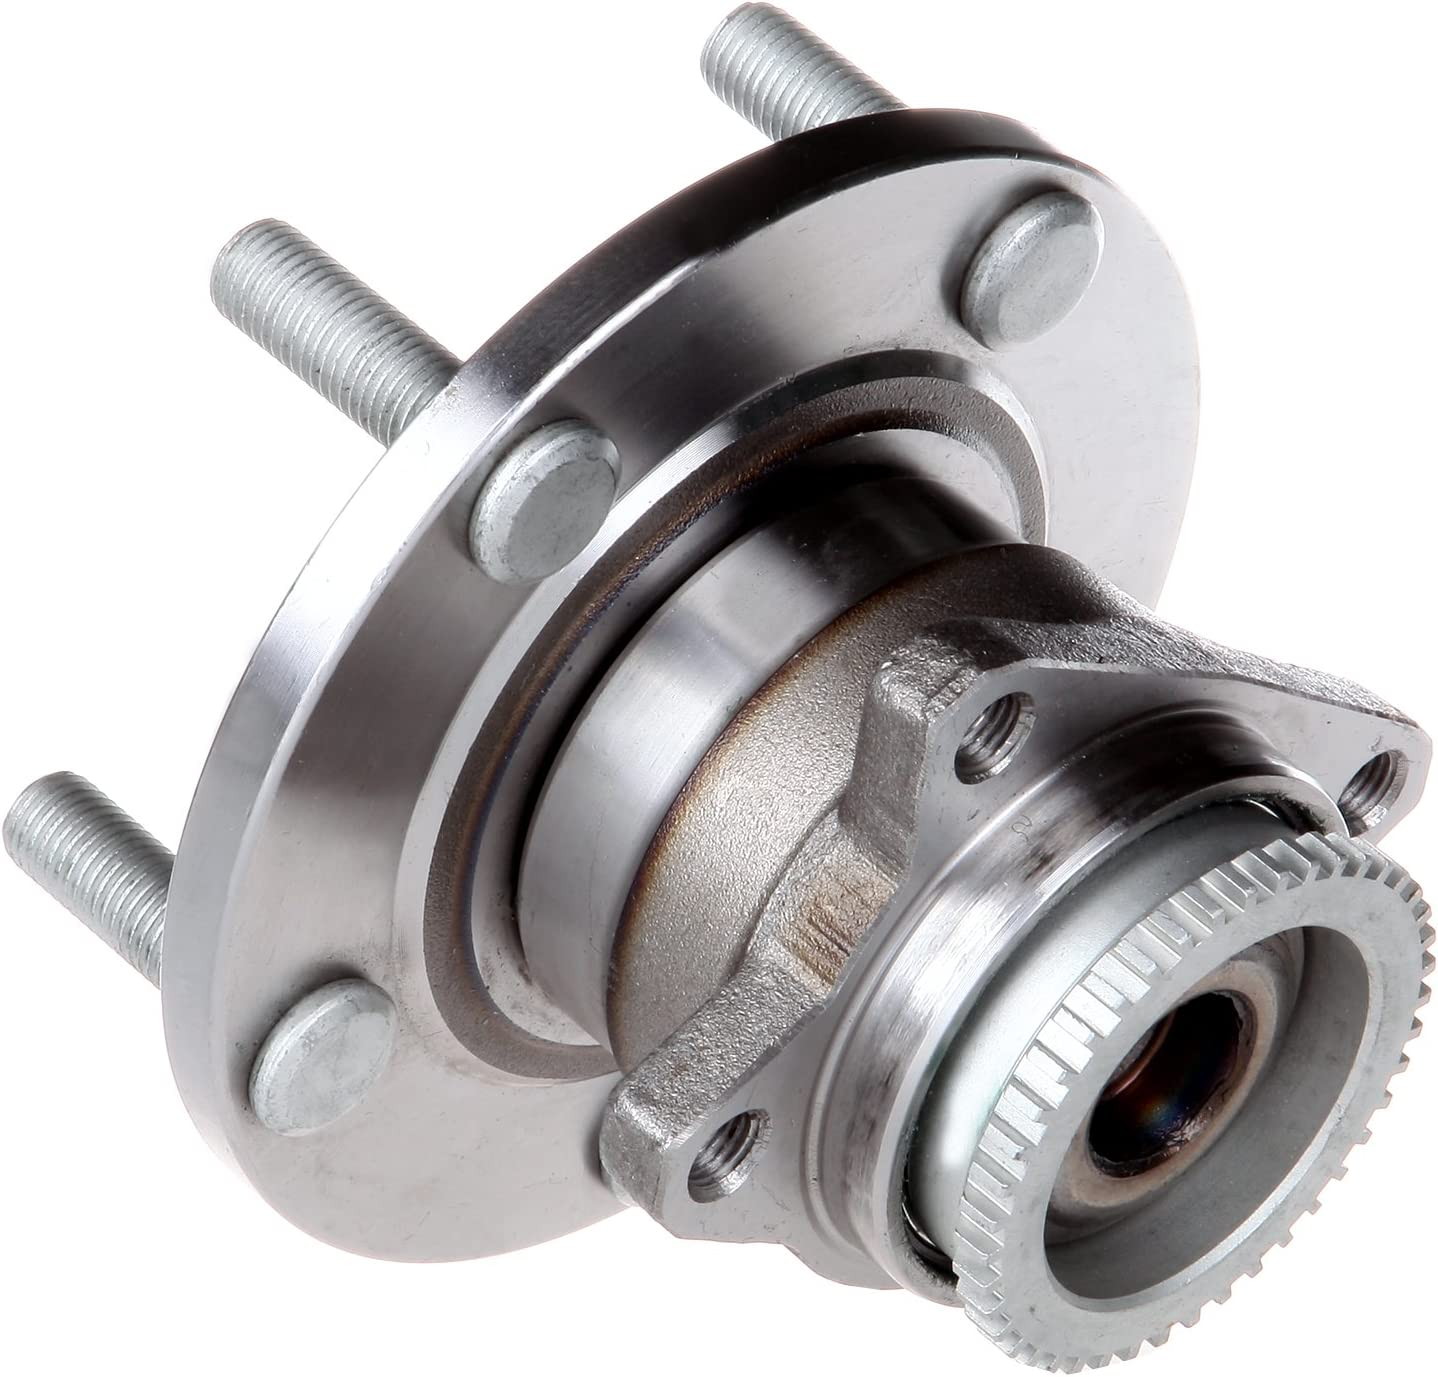 Aintier Front Wheel Hub Assembly fit for 2004 2005 2006 2007 2008 2009 2010 2011 2012 Mitsubishi Eplicpse Galant 5 Lugs W//ABS Hub Bearing 512274x1